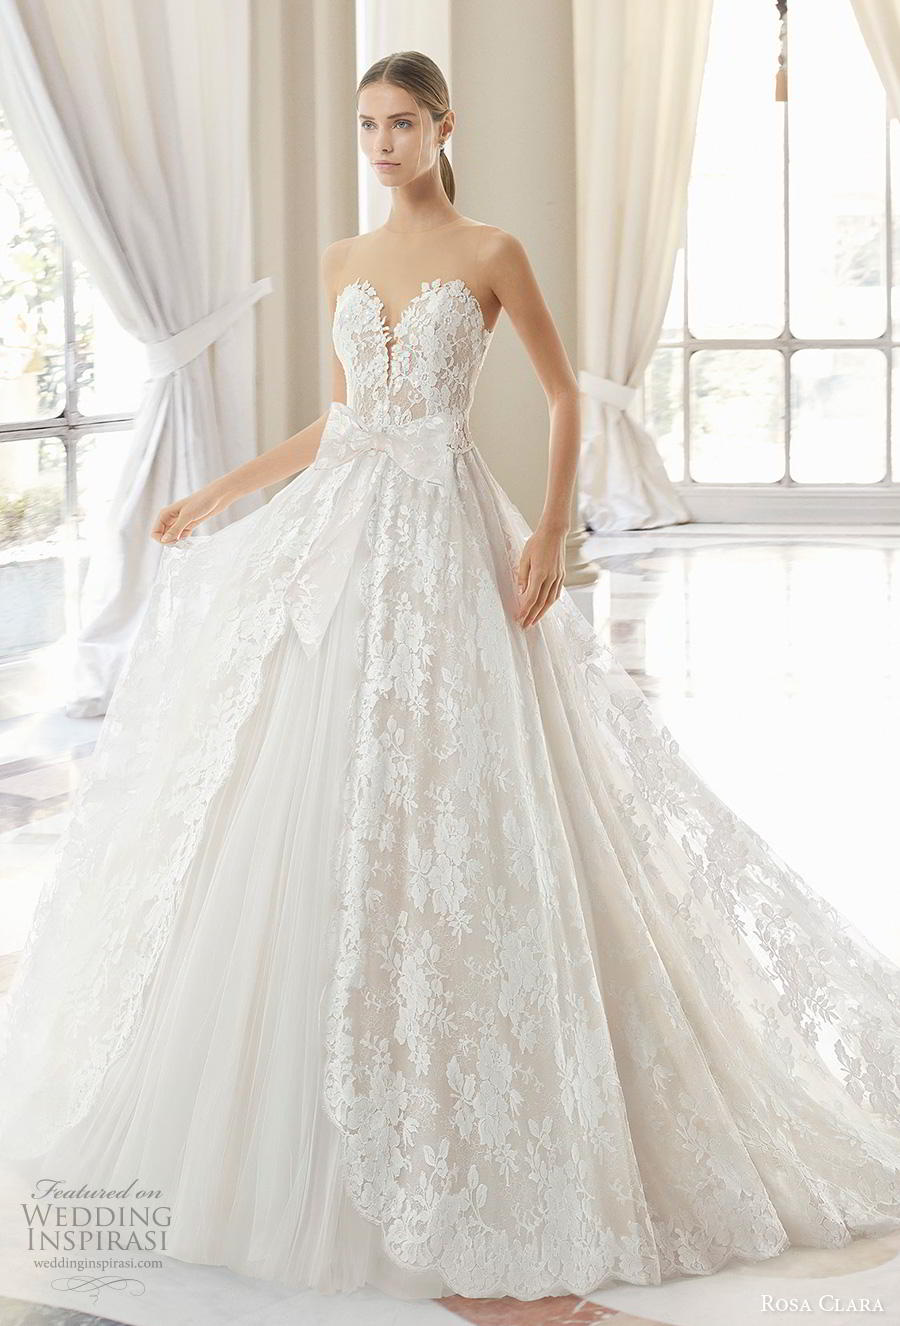 rosa clara 2019 couture bridal sleeveless illusion jewel sweetheart neckline full embellishment princess romantic a  line wedding dress sheer lace back sweep train (15) mv